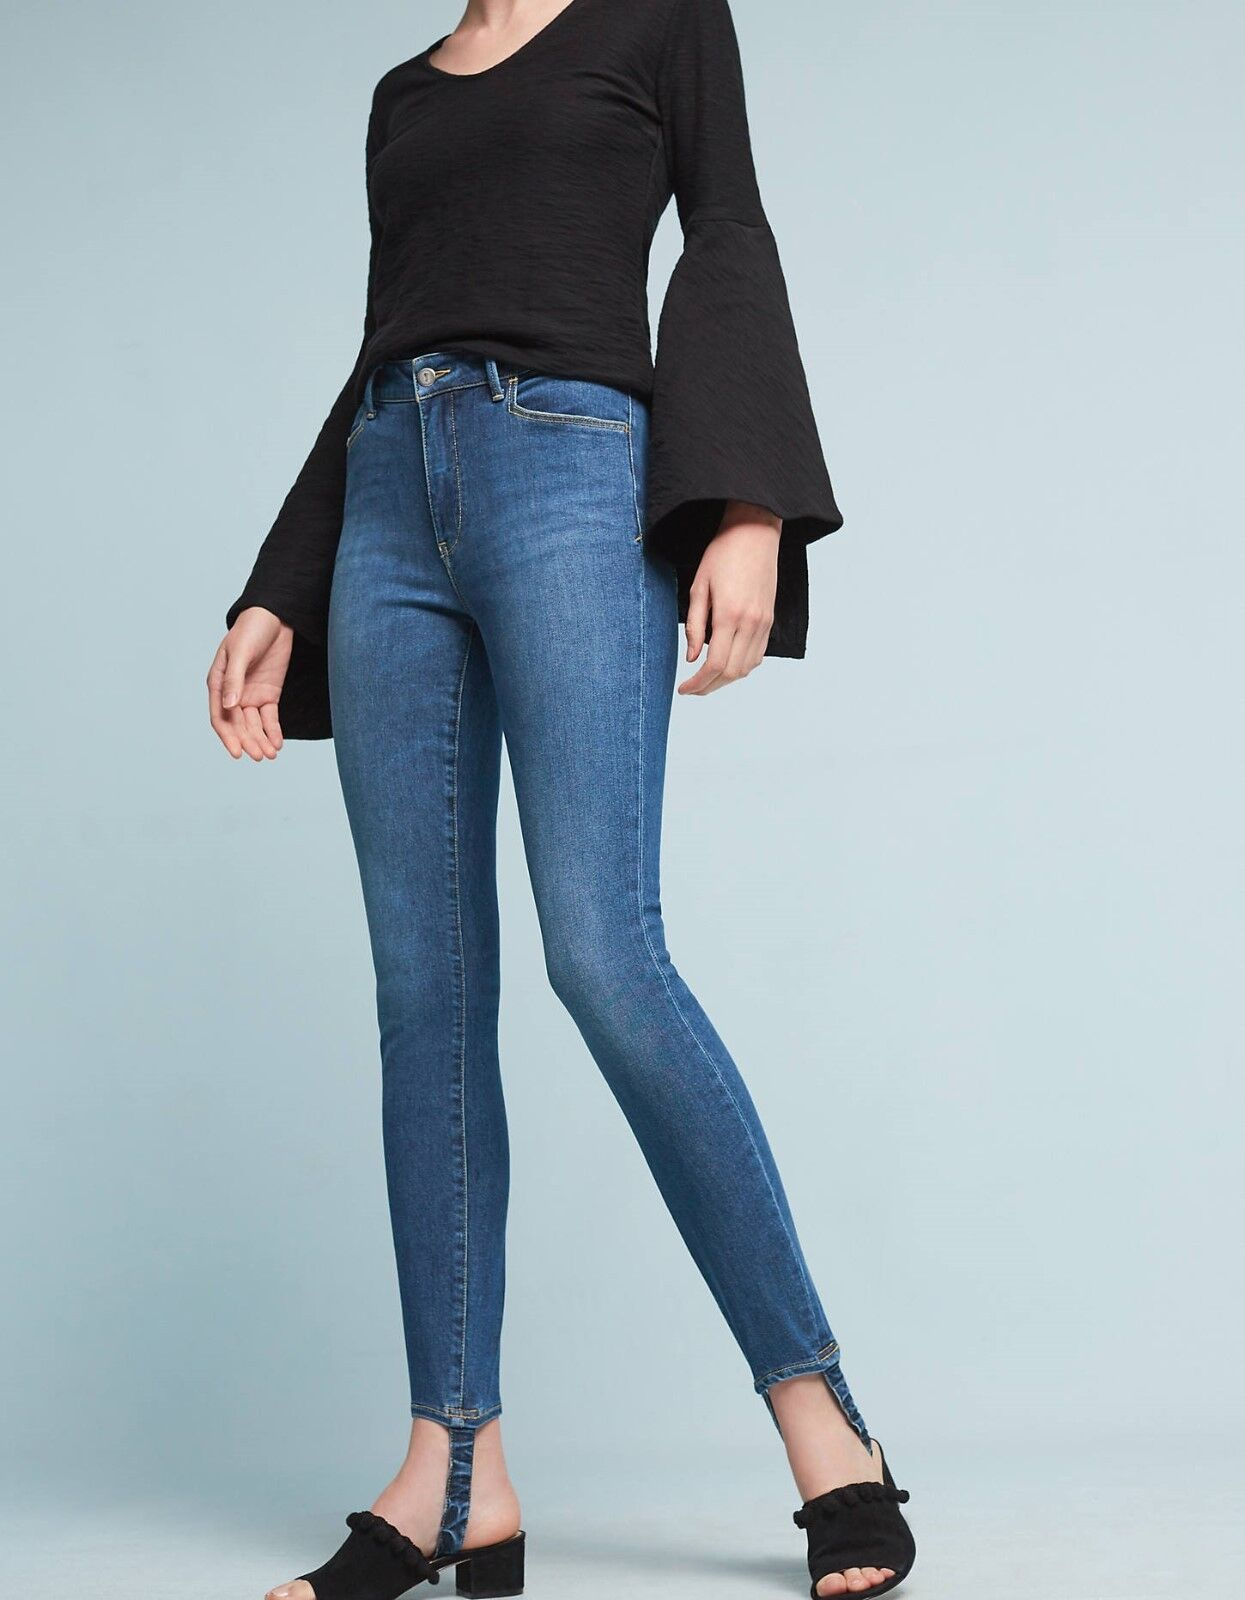 Pilcro Stirrup High-Rise Skinny Jeans Pants Size 30, 31 NW ANTHROPOLOGIE Tag